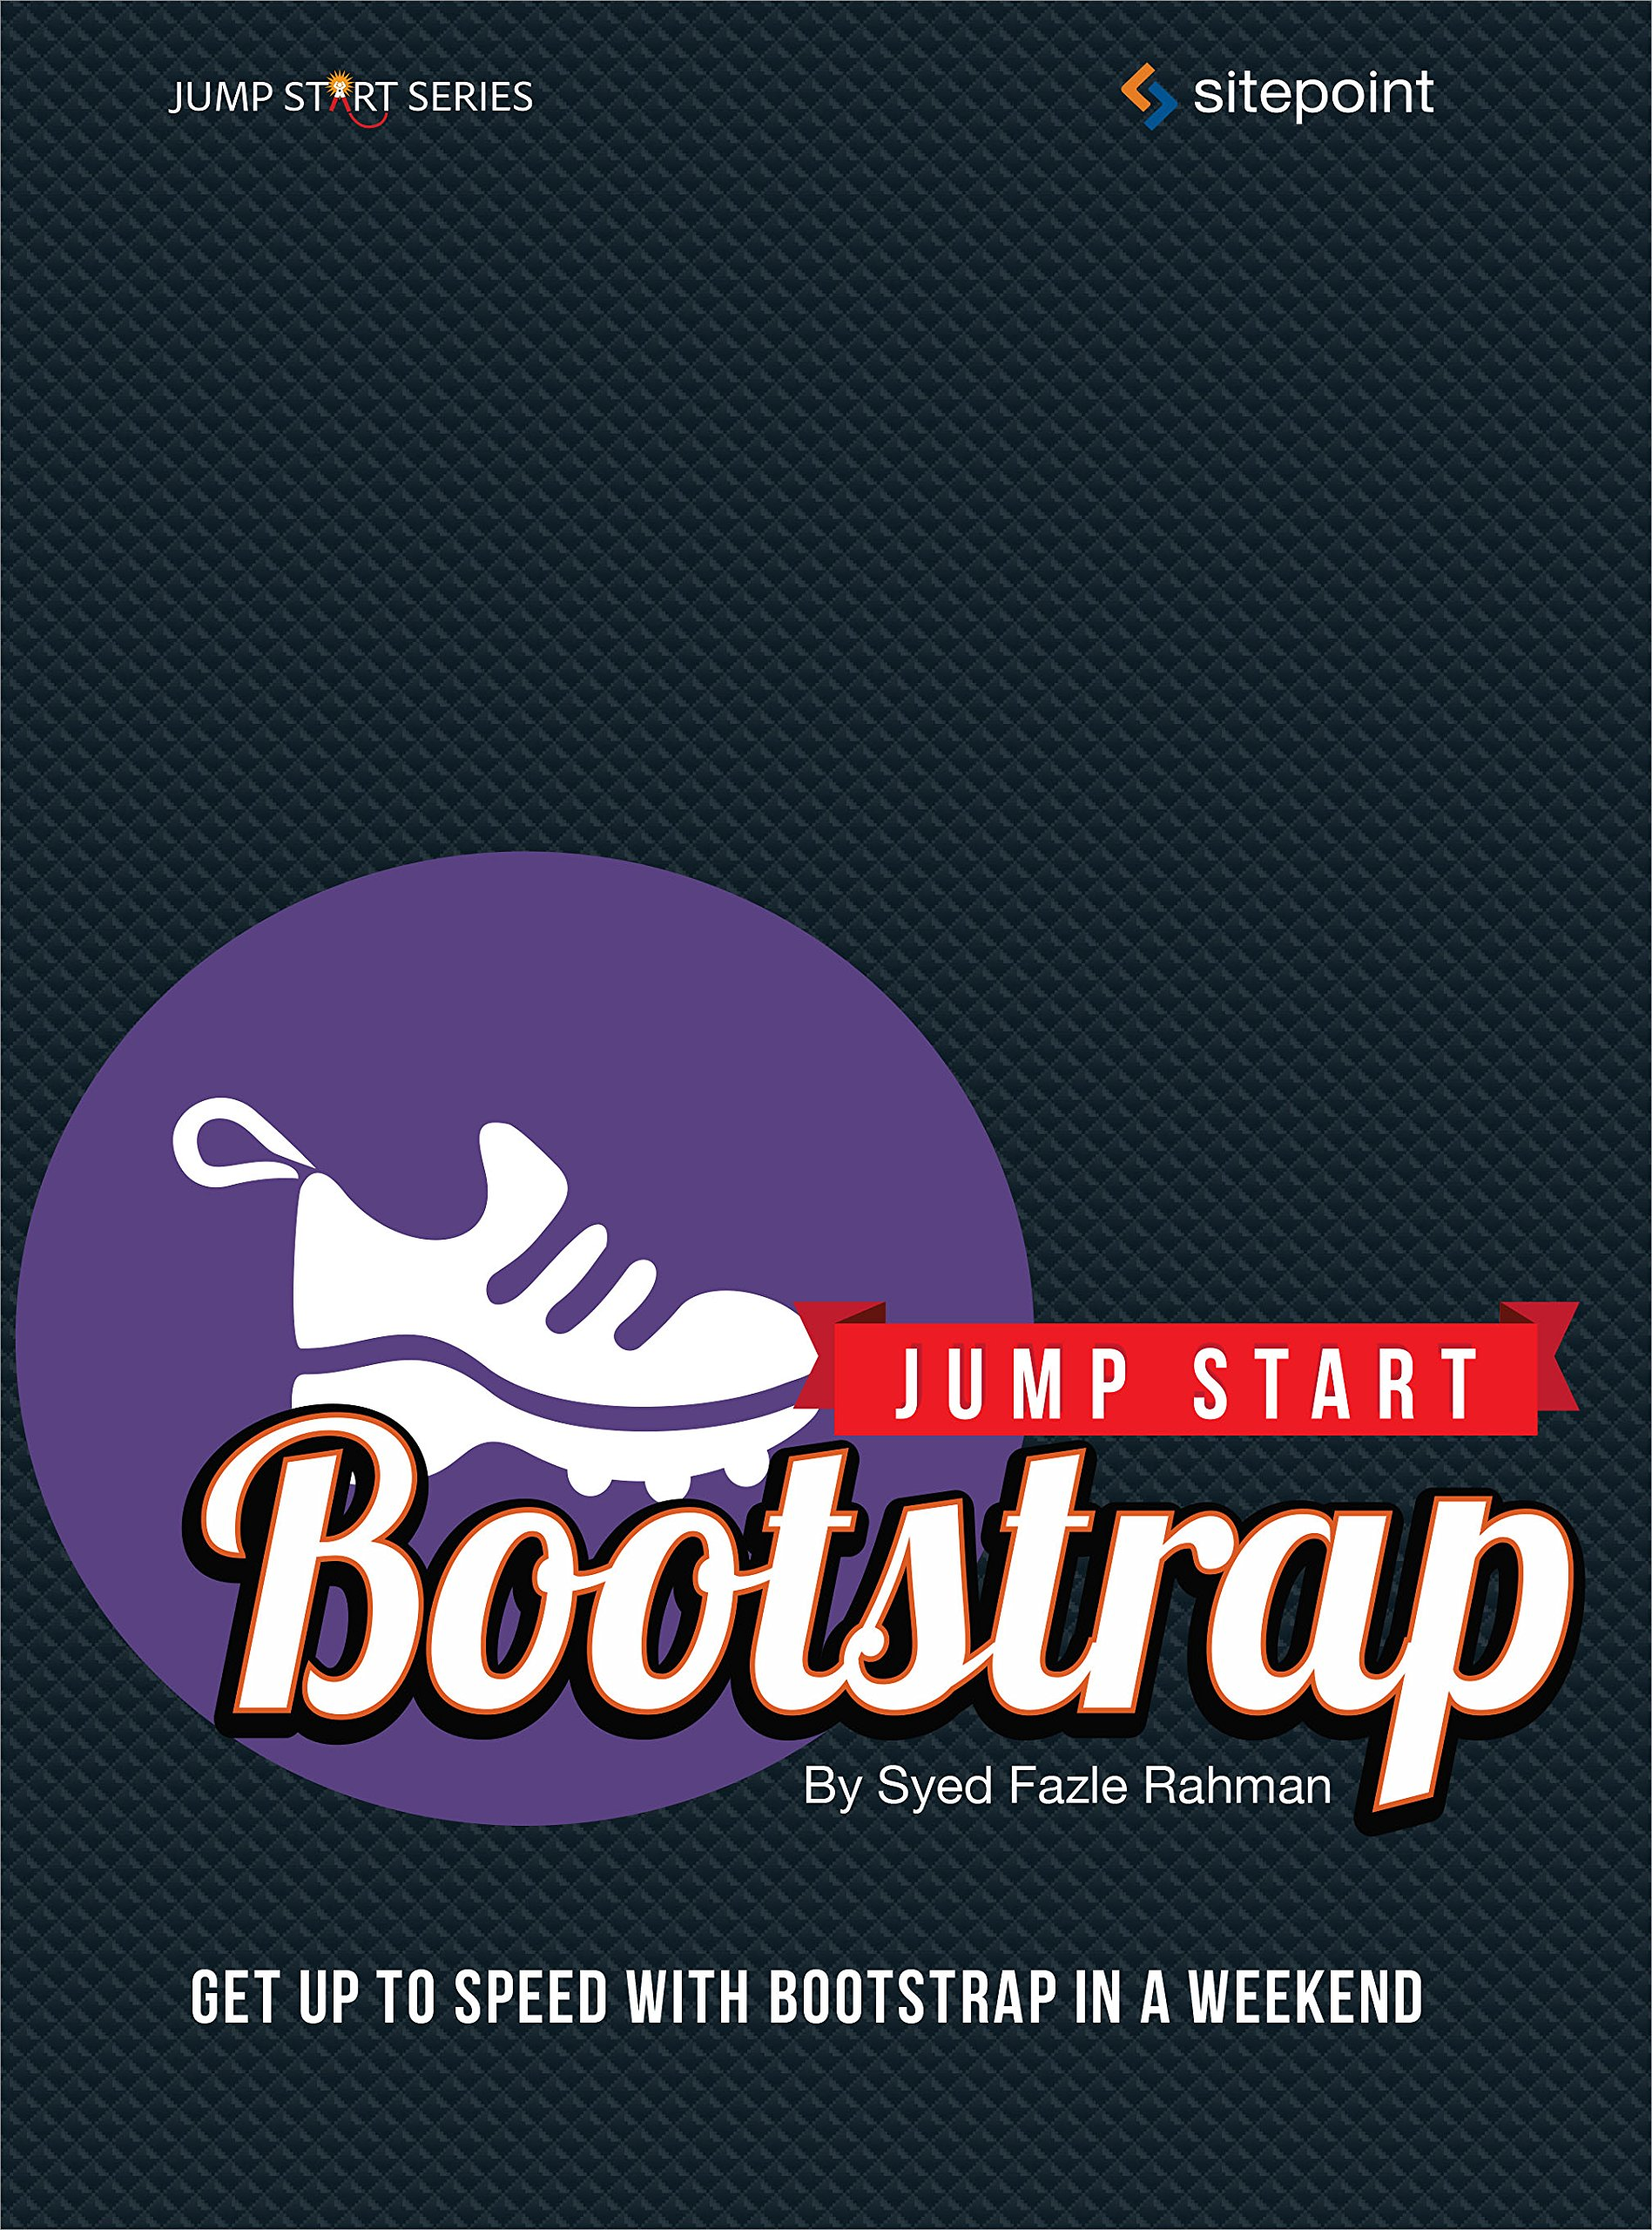 Jump Start Bootstrap: Amazon.co.uk: Syed Fazle Rahman: 9780992279431 ...